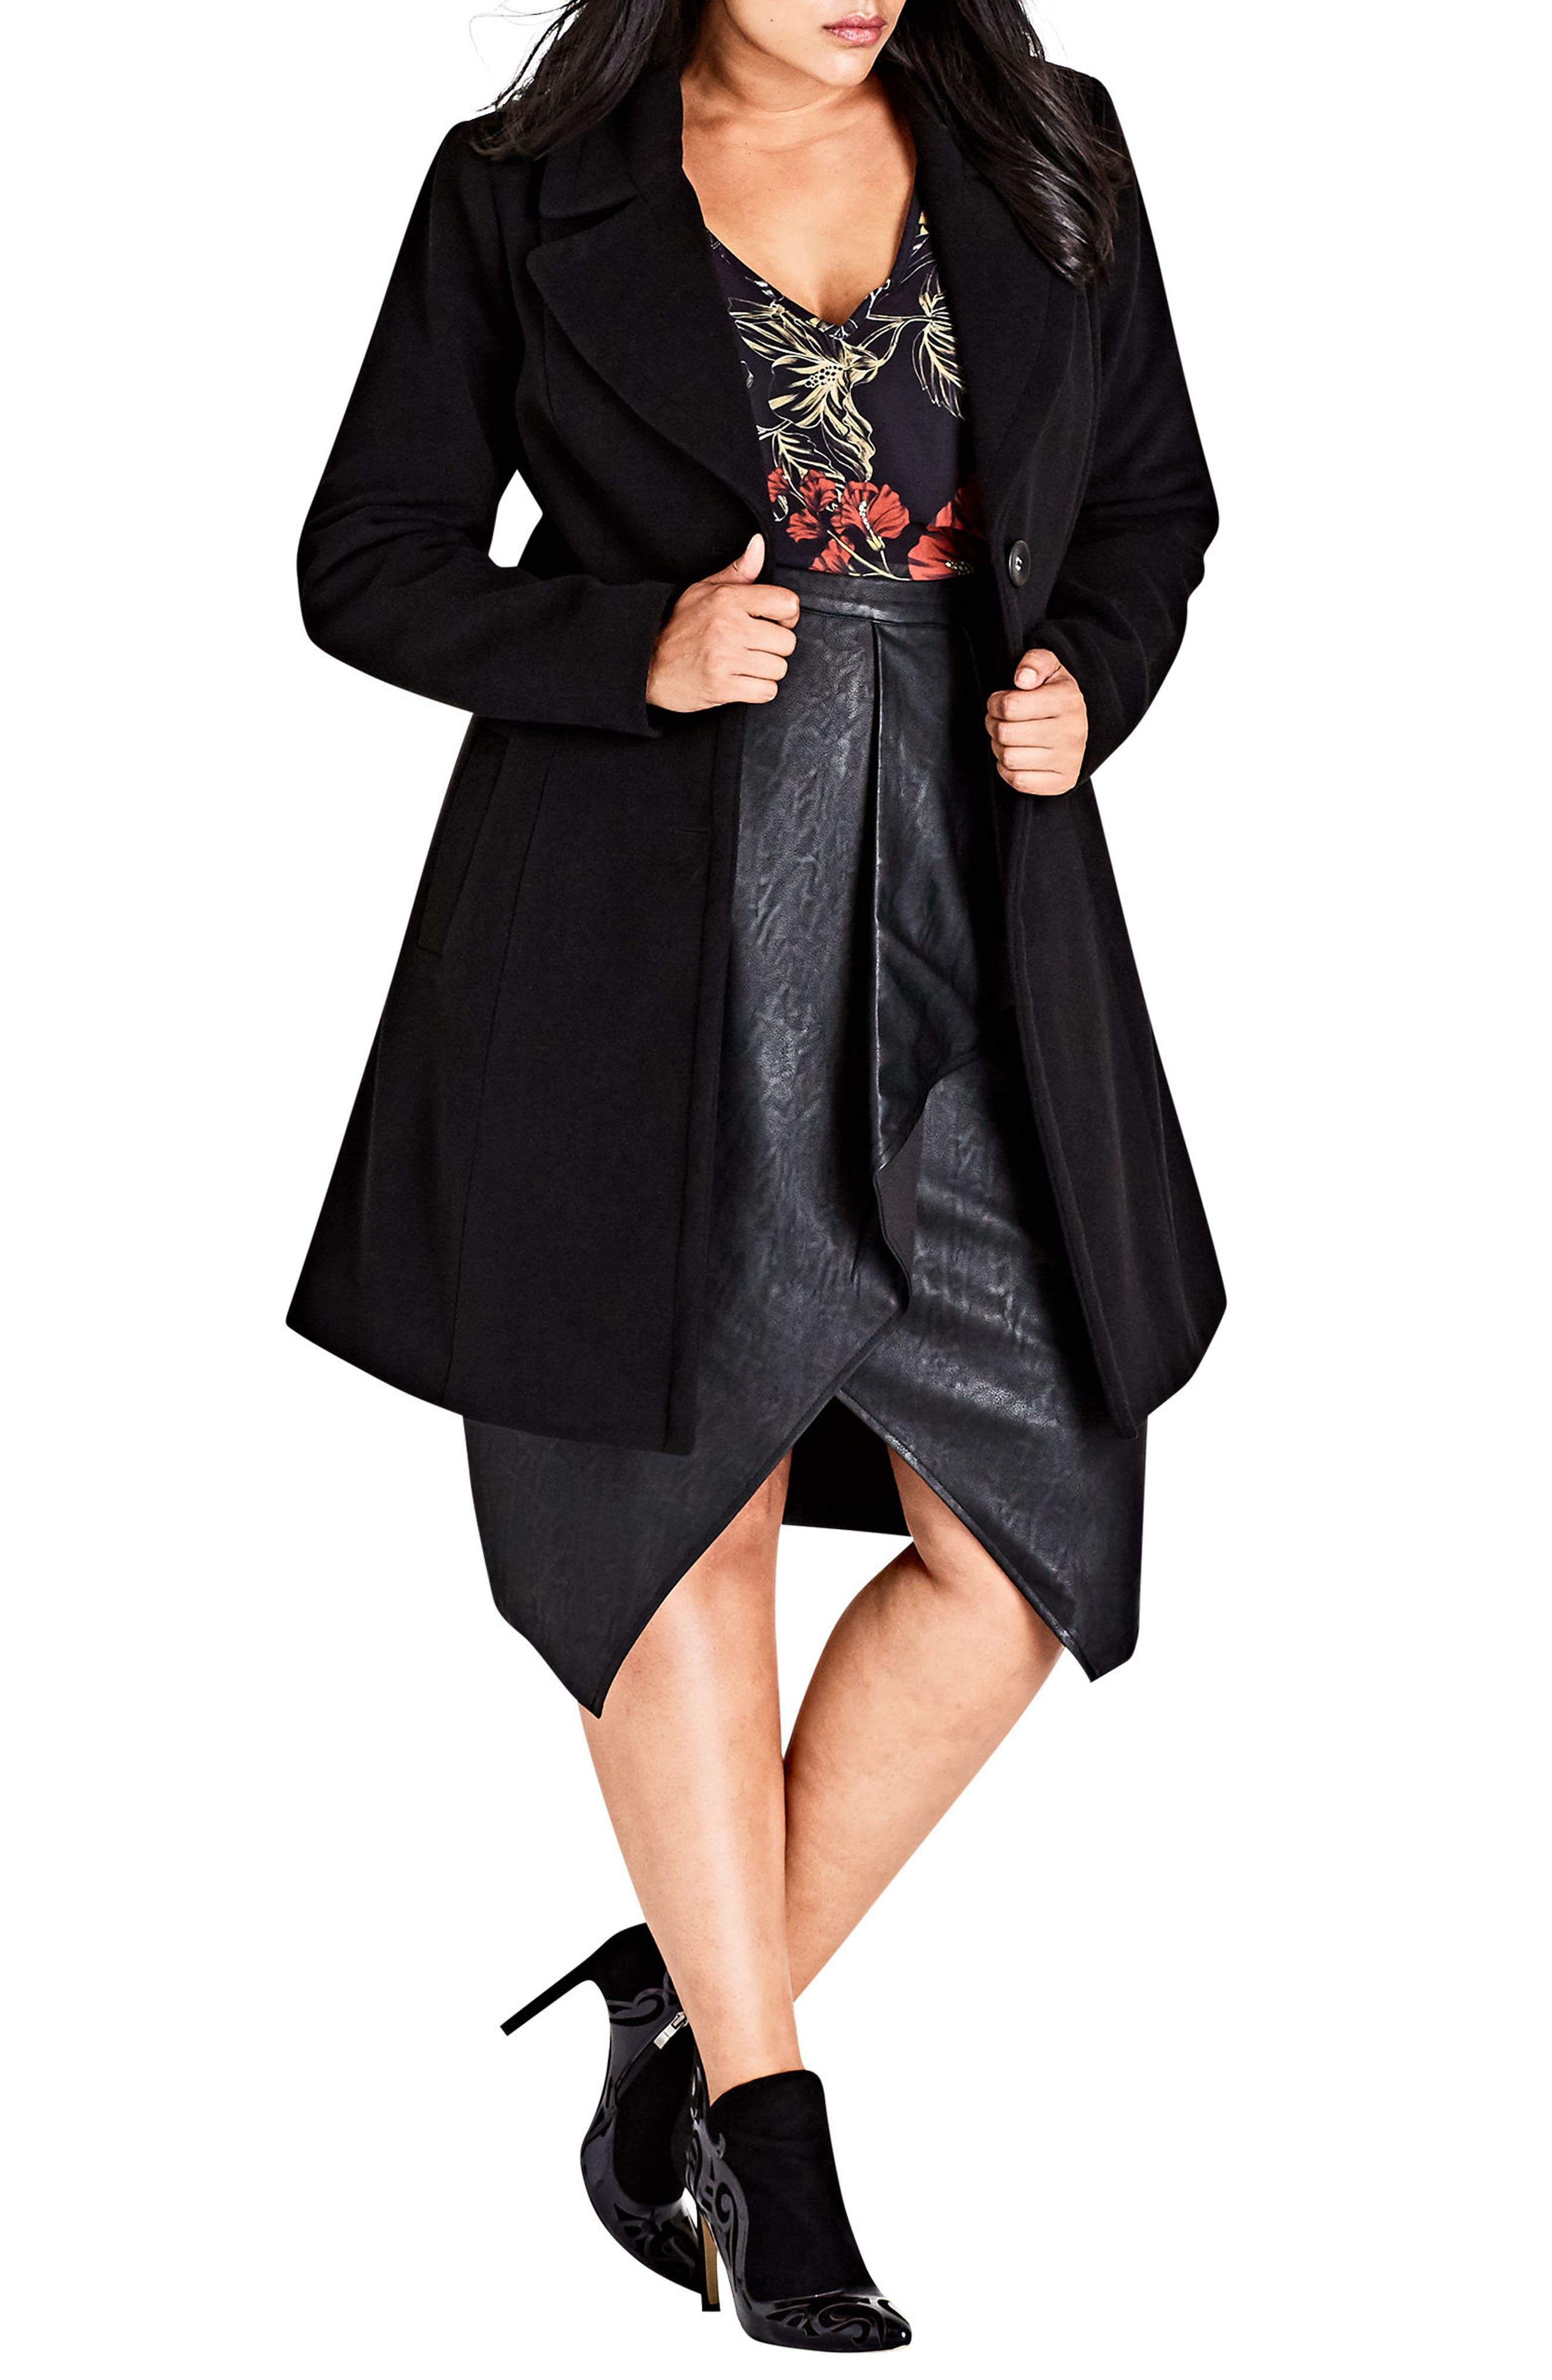 Alternate Image 1 Selected - City Chic Midnight Escape Coat (Plus Size)